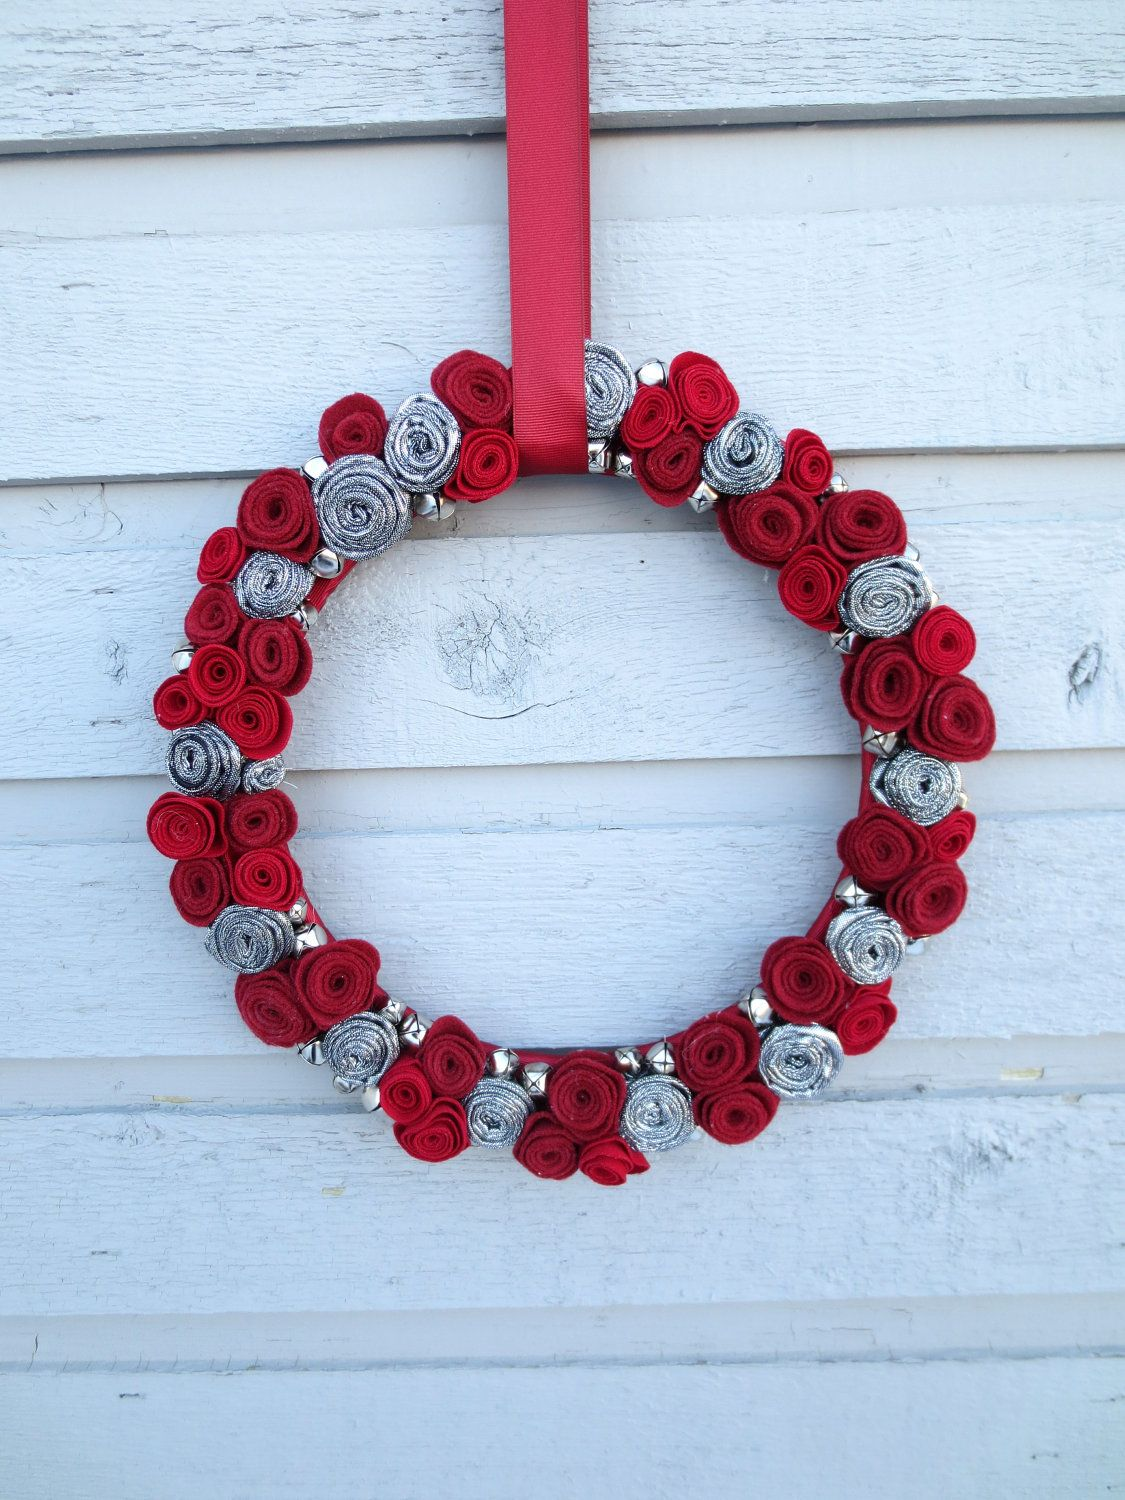 Holiday Wreath - Silver and Scarlett with Silver Bells - Christmas - Holiday Decor